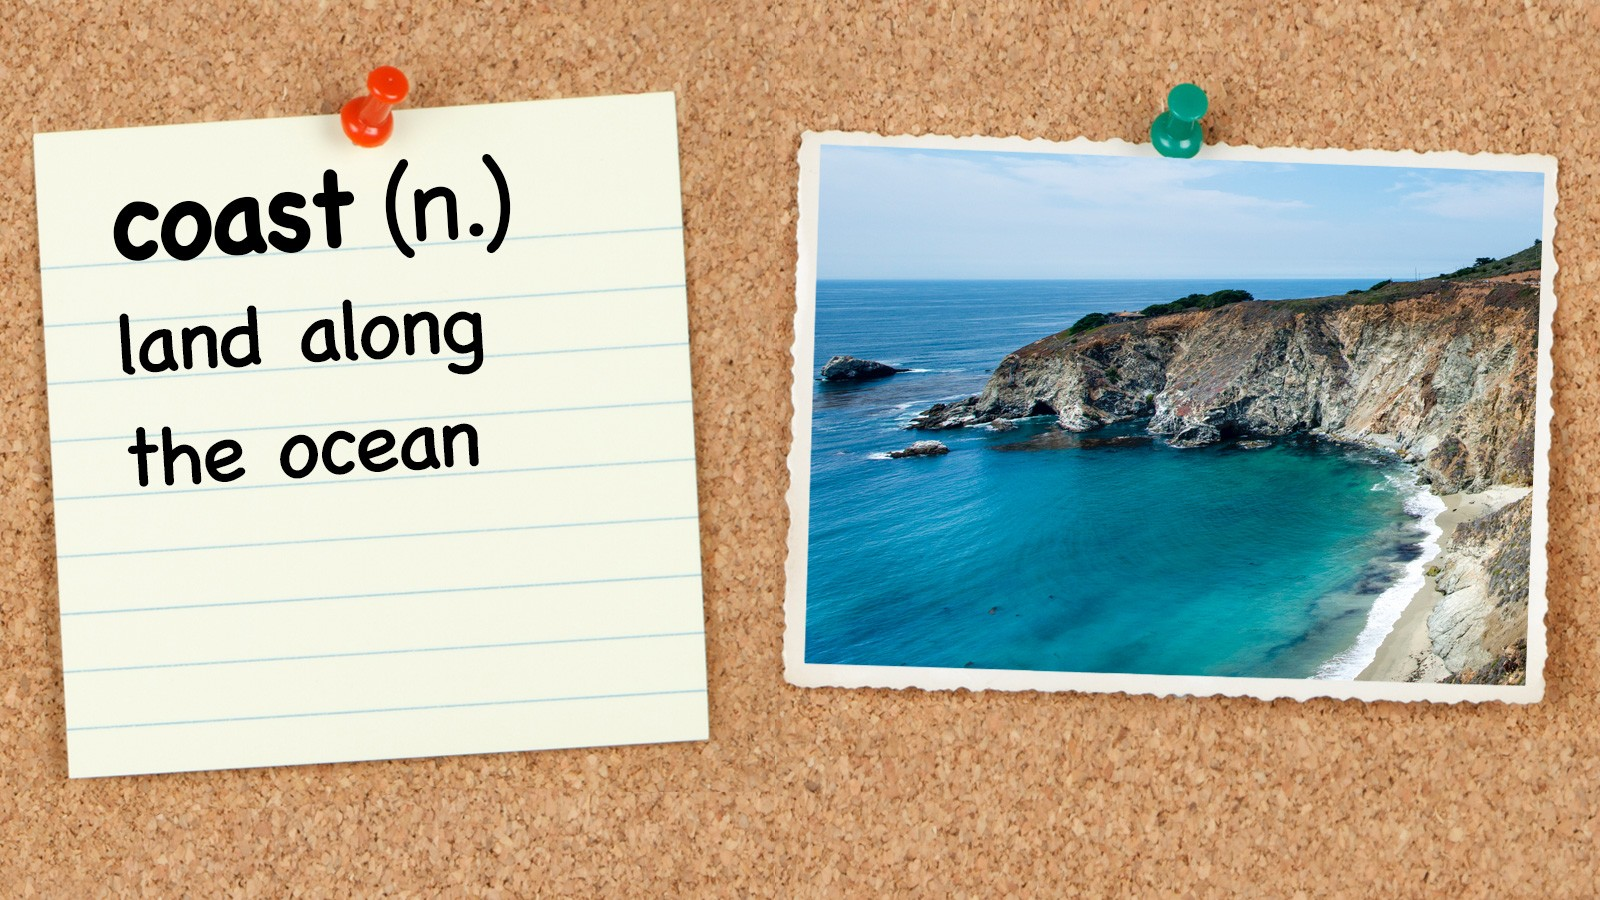 Vocabulary word coast with definition